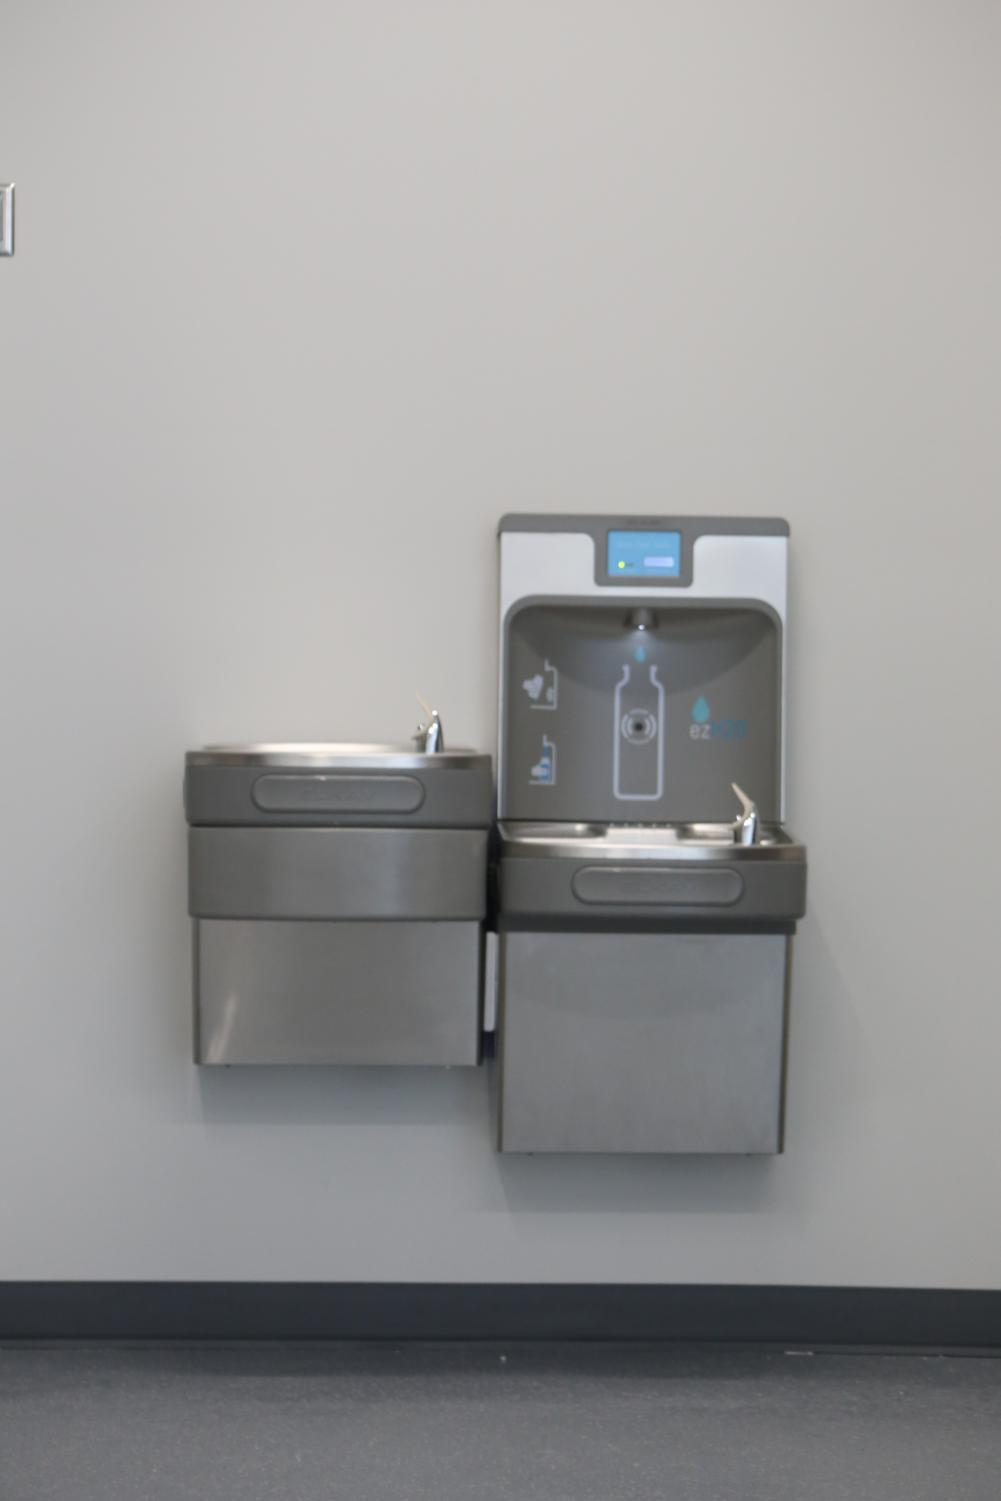 In+the+new+CTE+building+they+have+a+new+water+bottle+refill+station.+Water+bottle+refill+stations+are+convenient+and+easy+for+refilling+water+bottles.